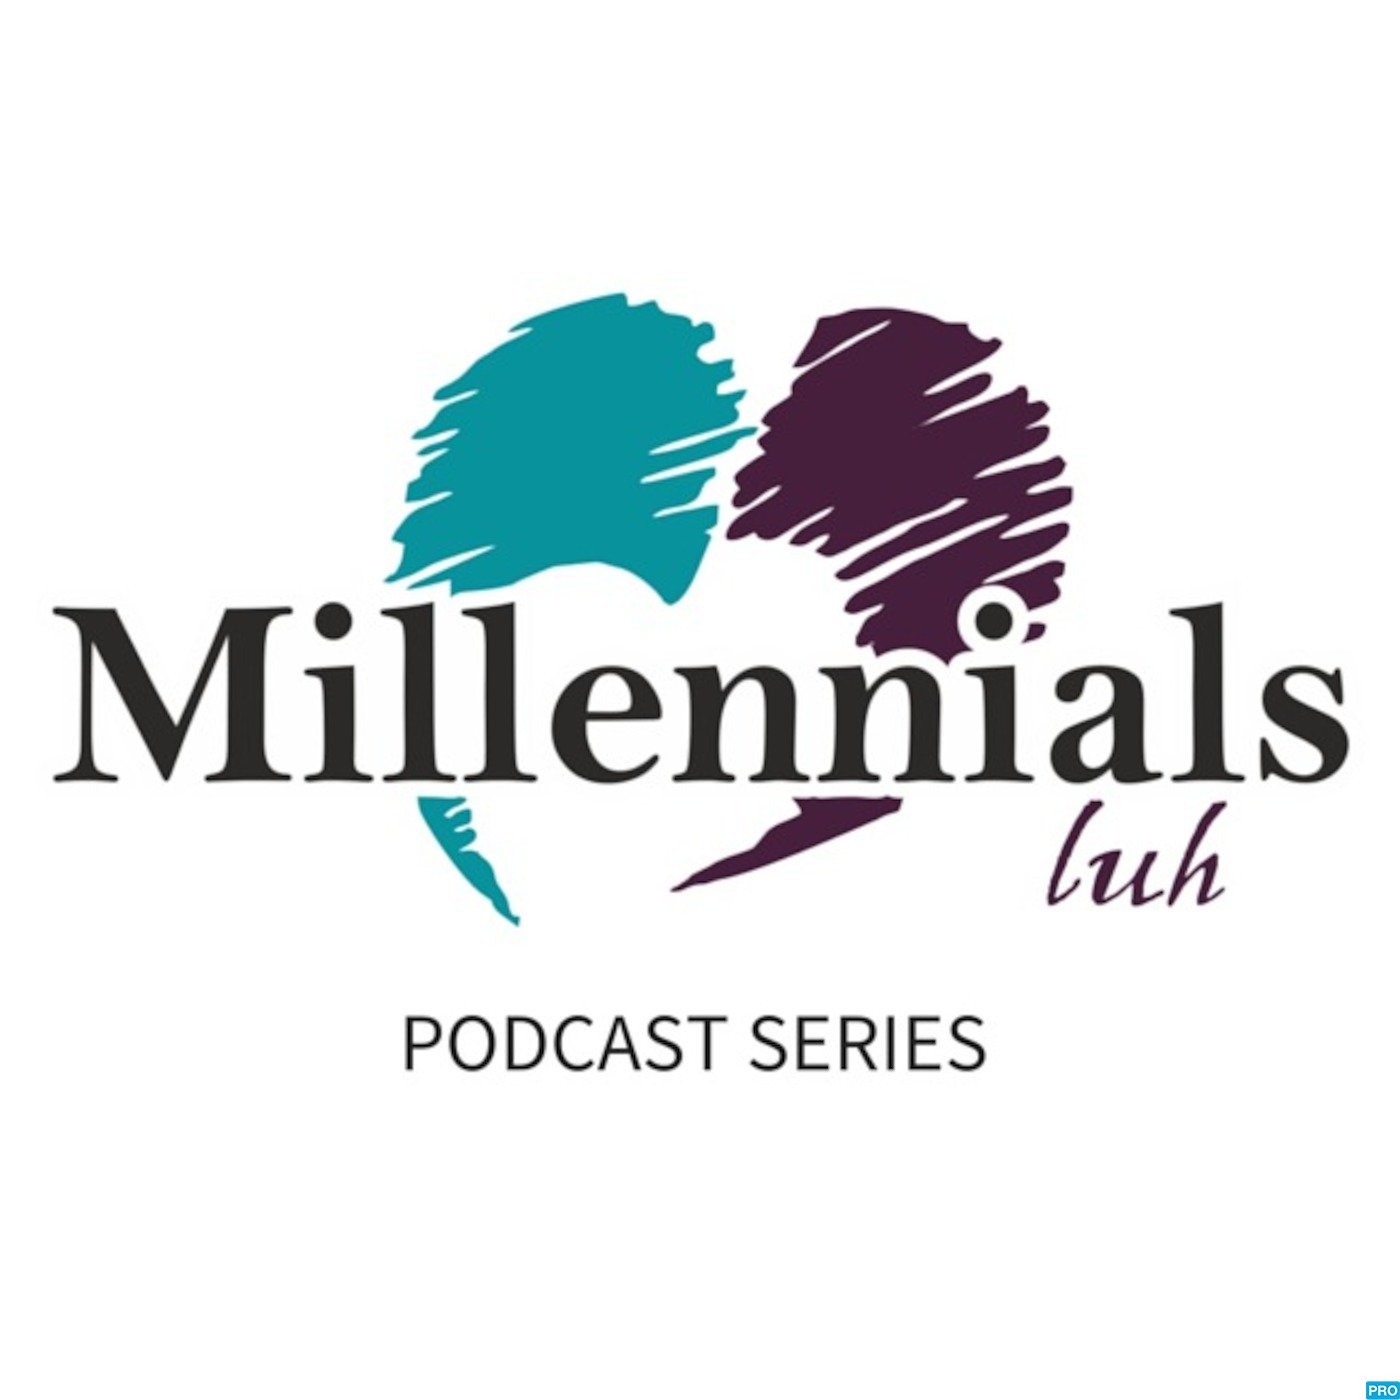 Millennials luh Podcast Series